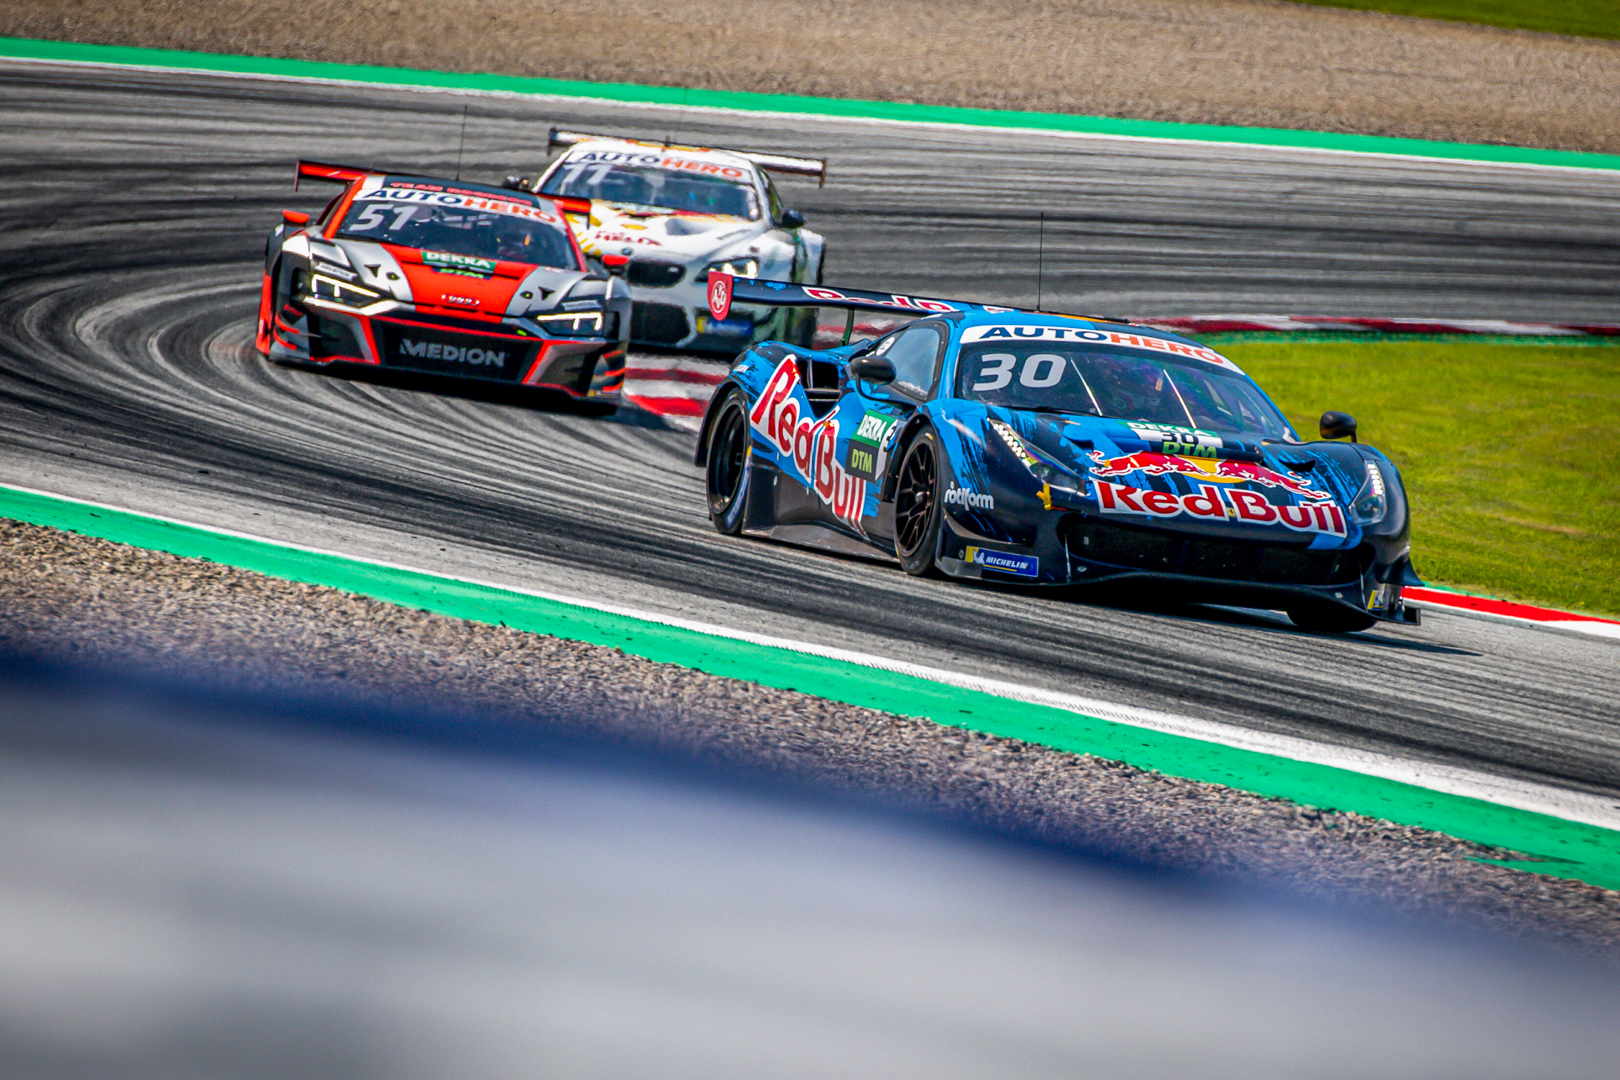 Liam Lawson crowns a perfect weekend with back-to-back victories at the Red Bull Ring